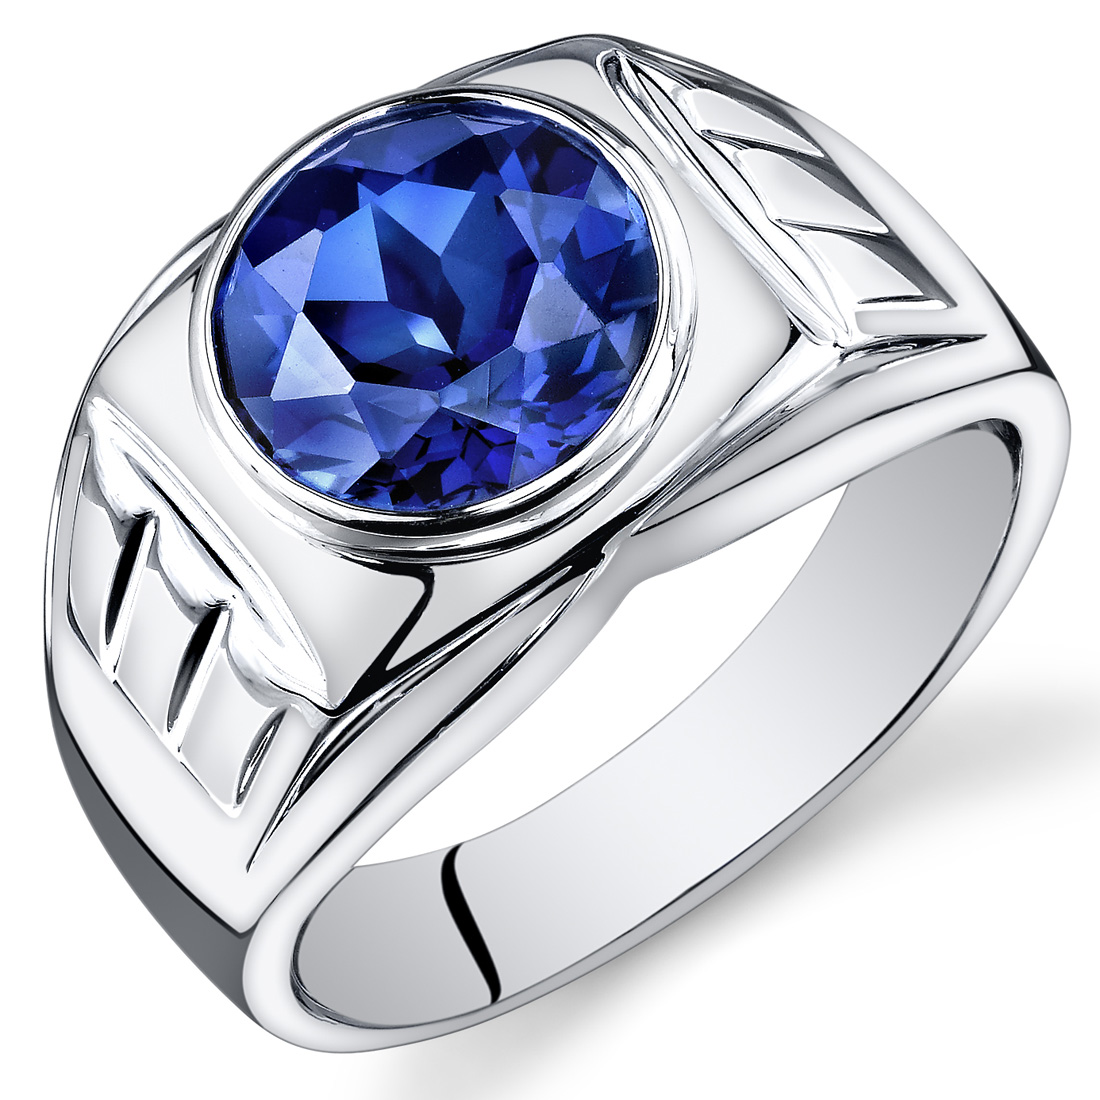 mens 5 5 cts round cut sapphire sterling silver ring sizes. Black Bedroom Furniture Sets. Home Design Ideas